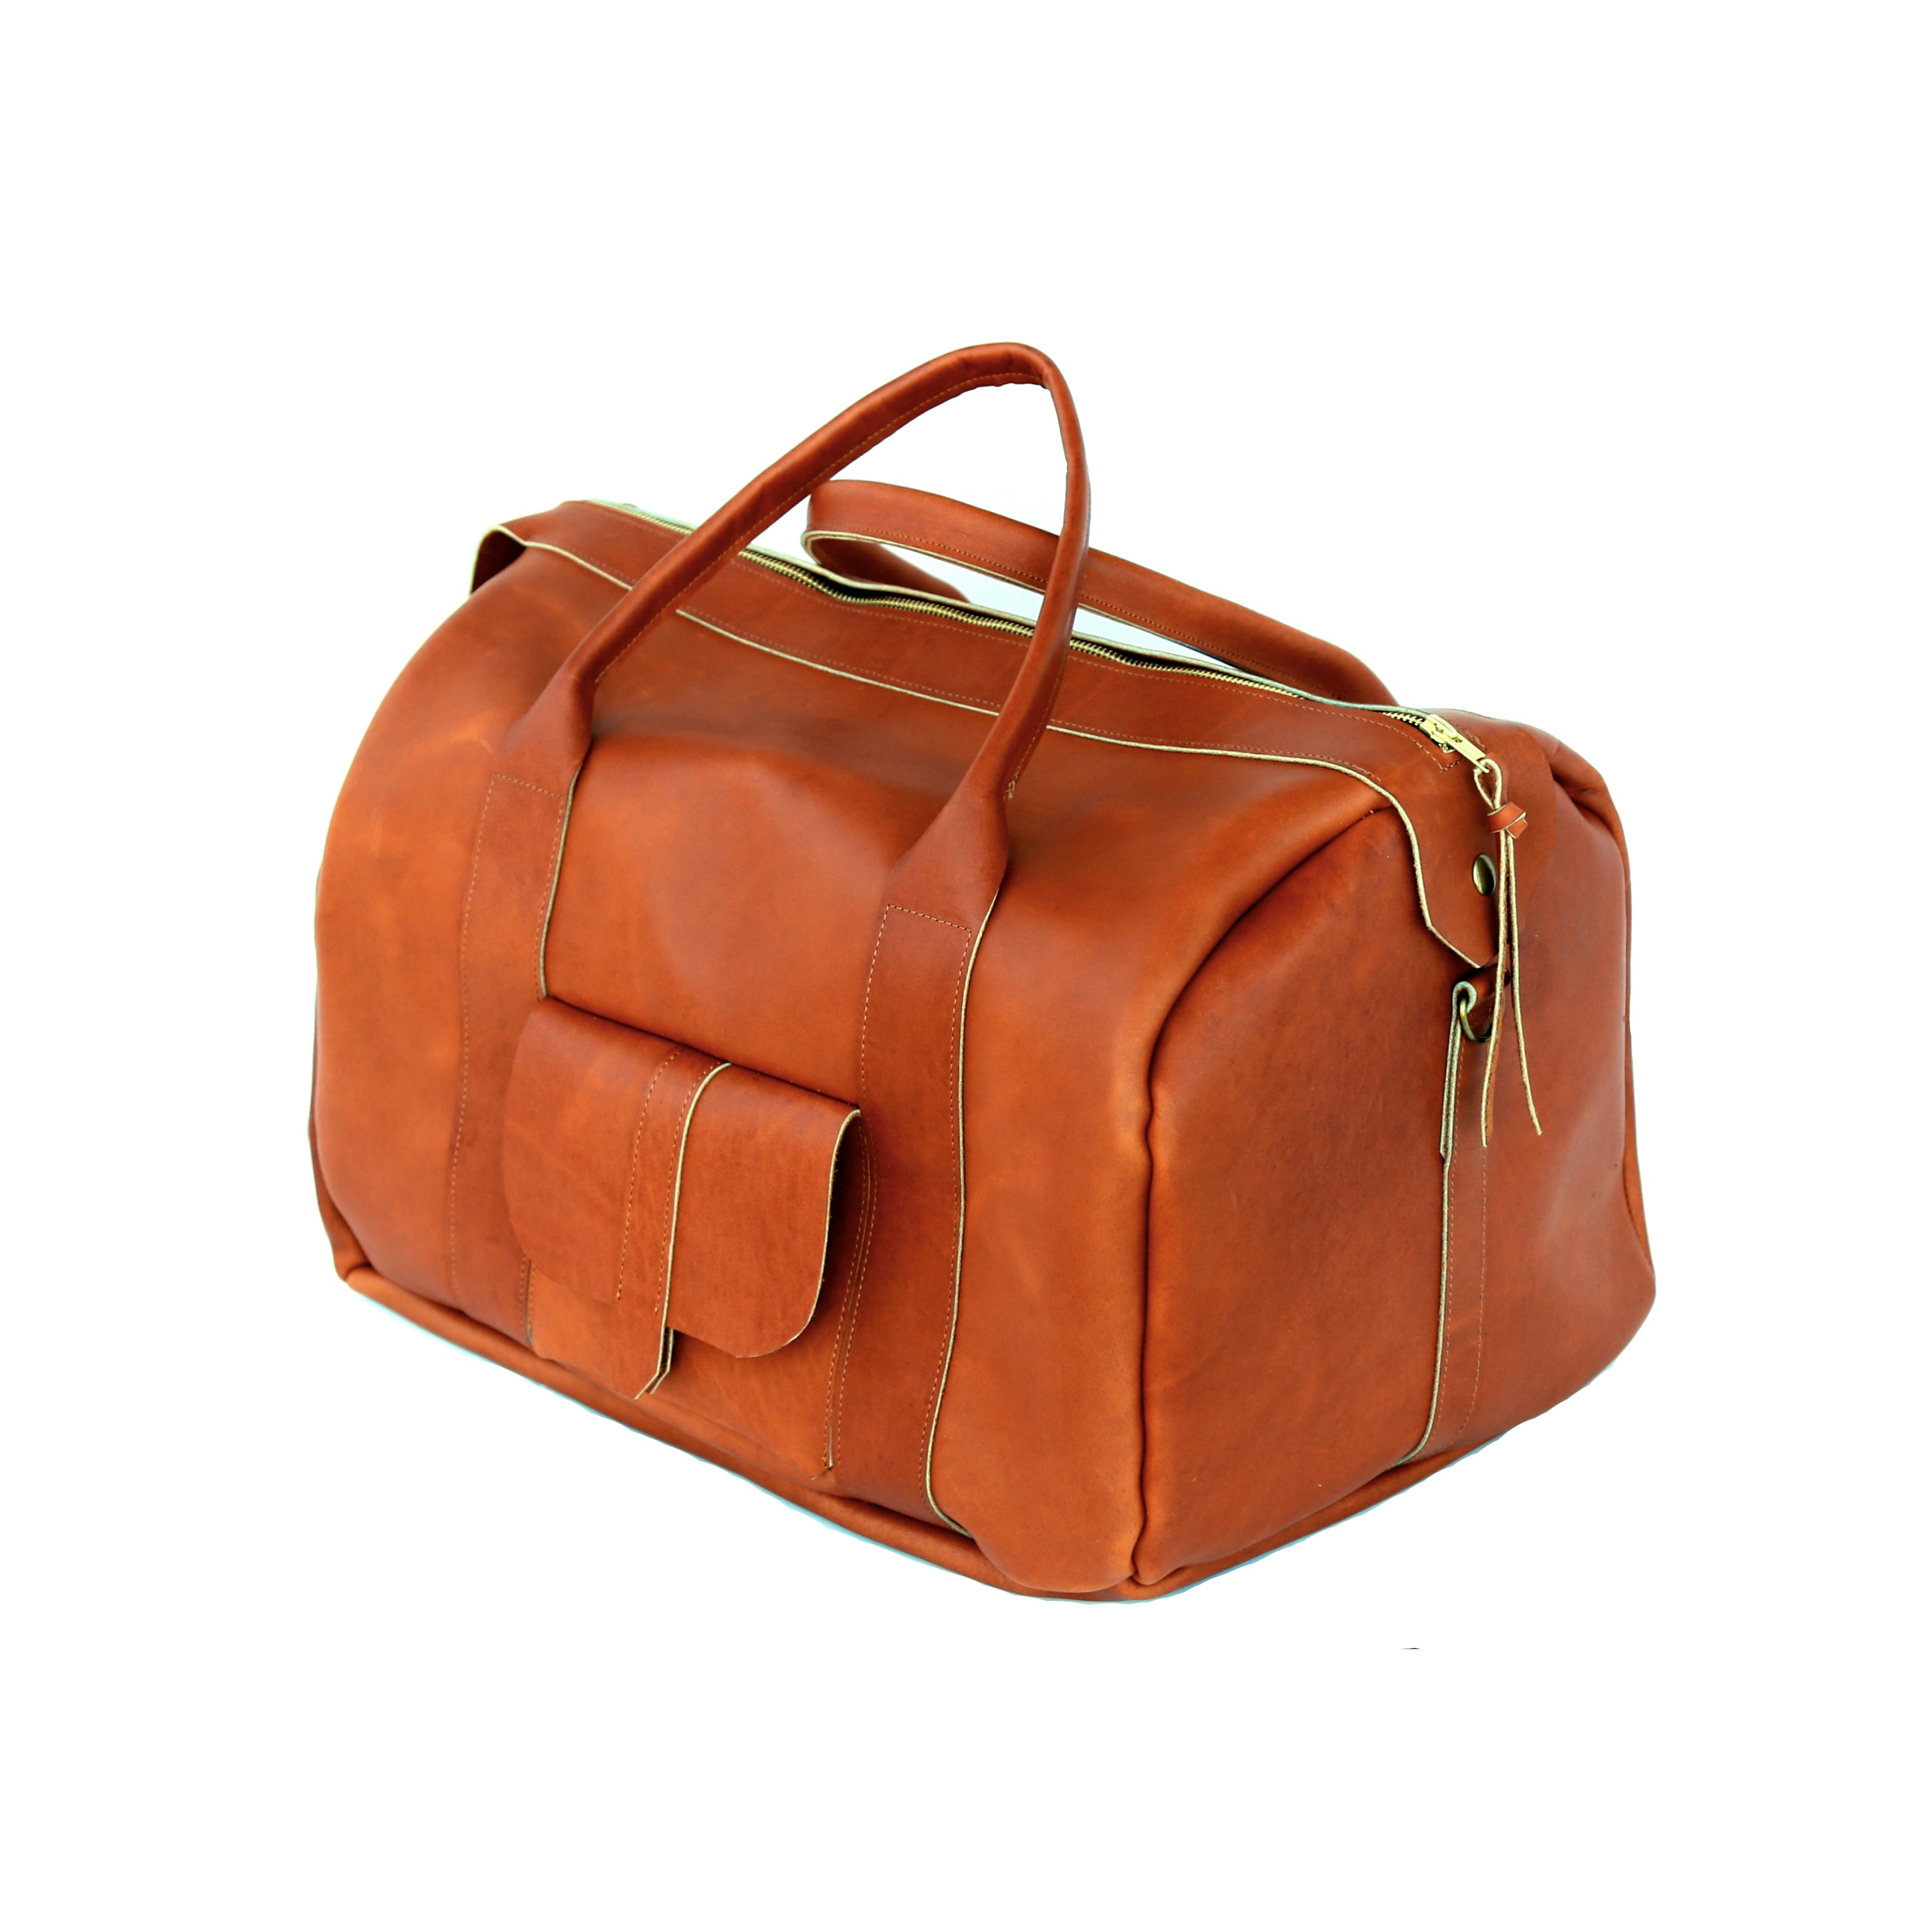 The Weekender in Ocher Leather - handcrafted by Market Canvas Leather in Tofino, BC, Canada